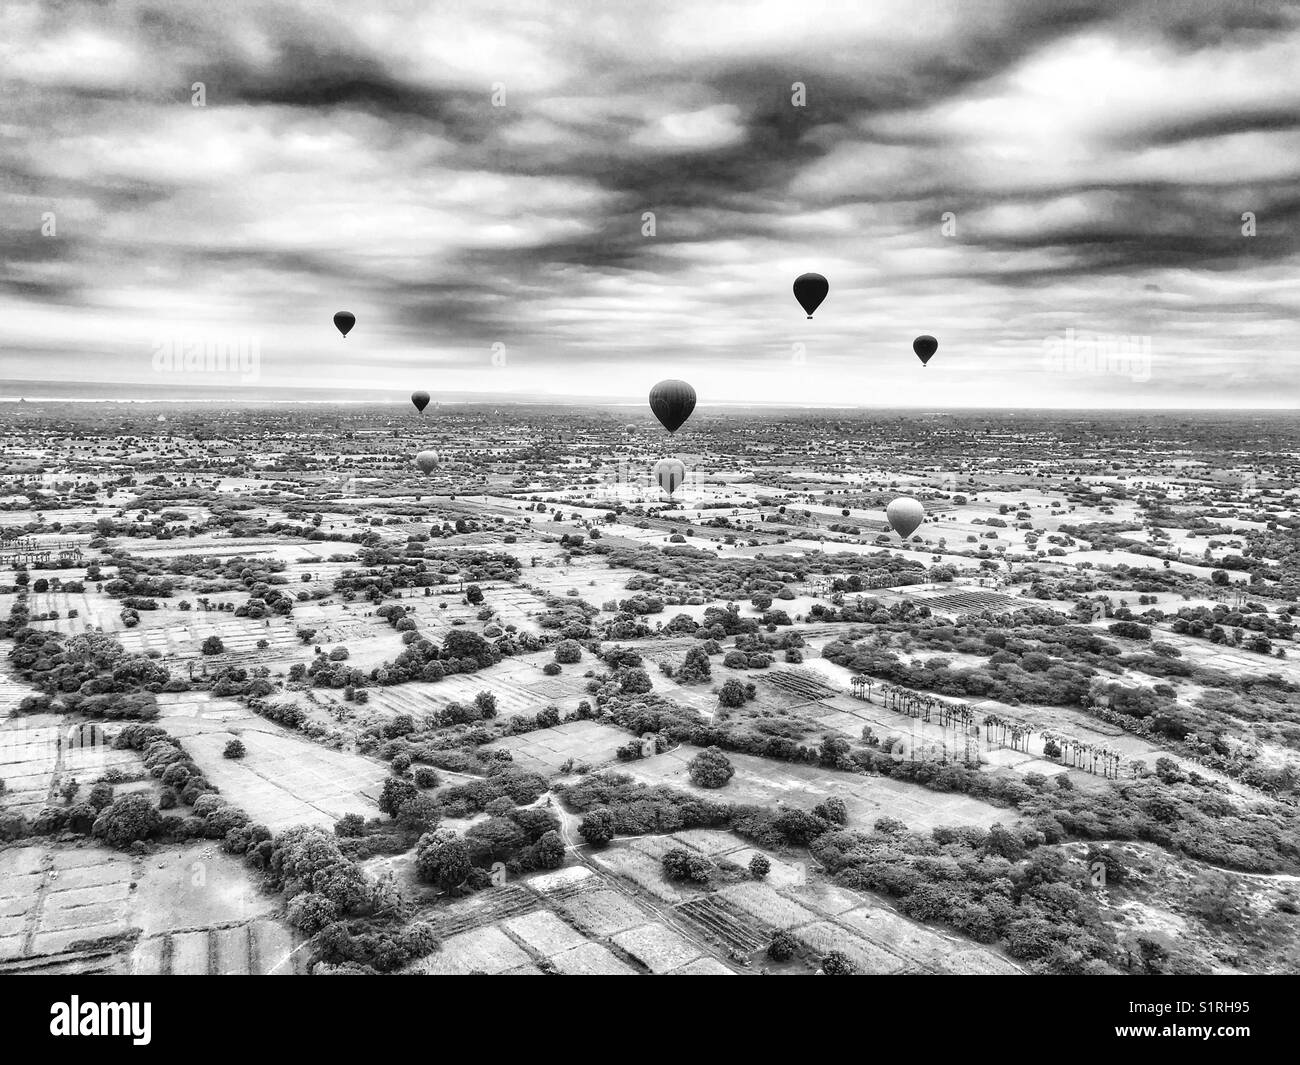 Hot air balloons over Bagan, Myanmar - Stock Image